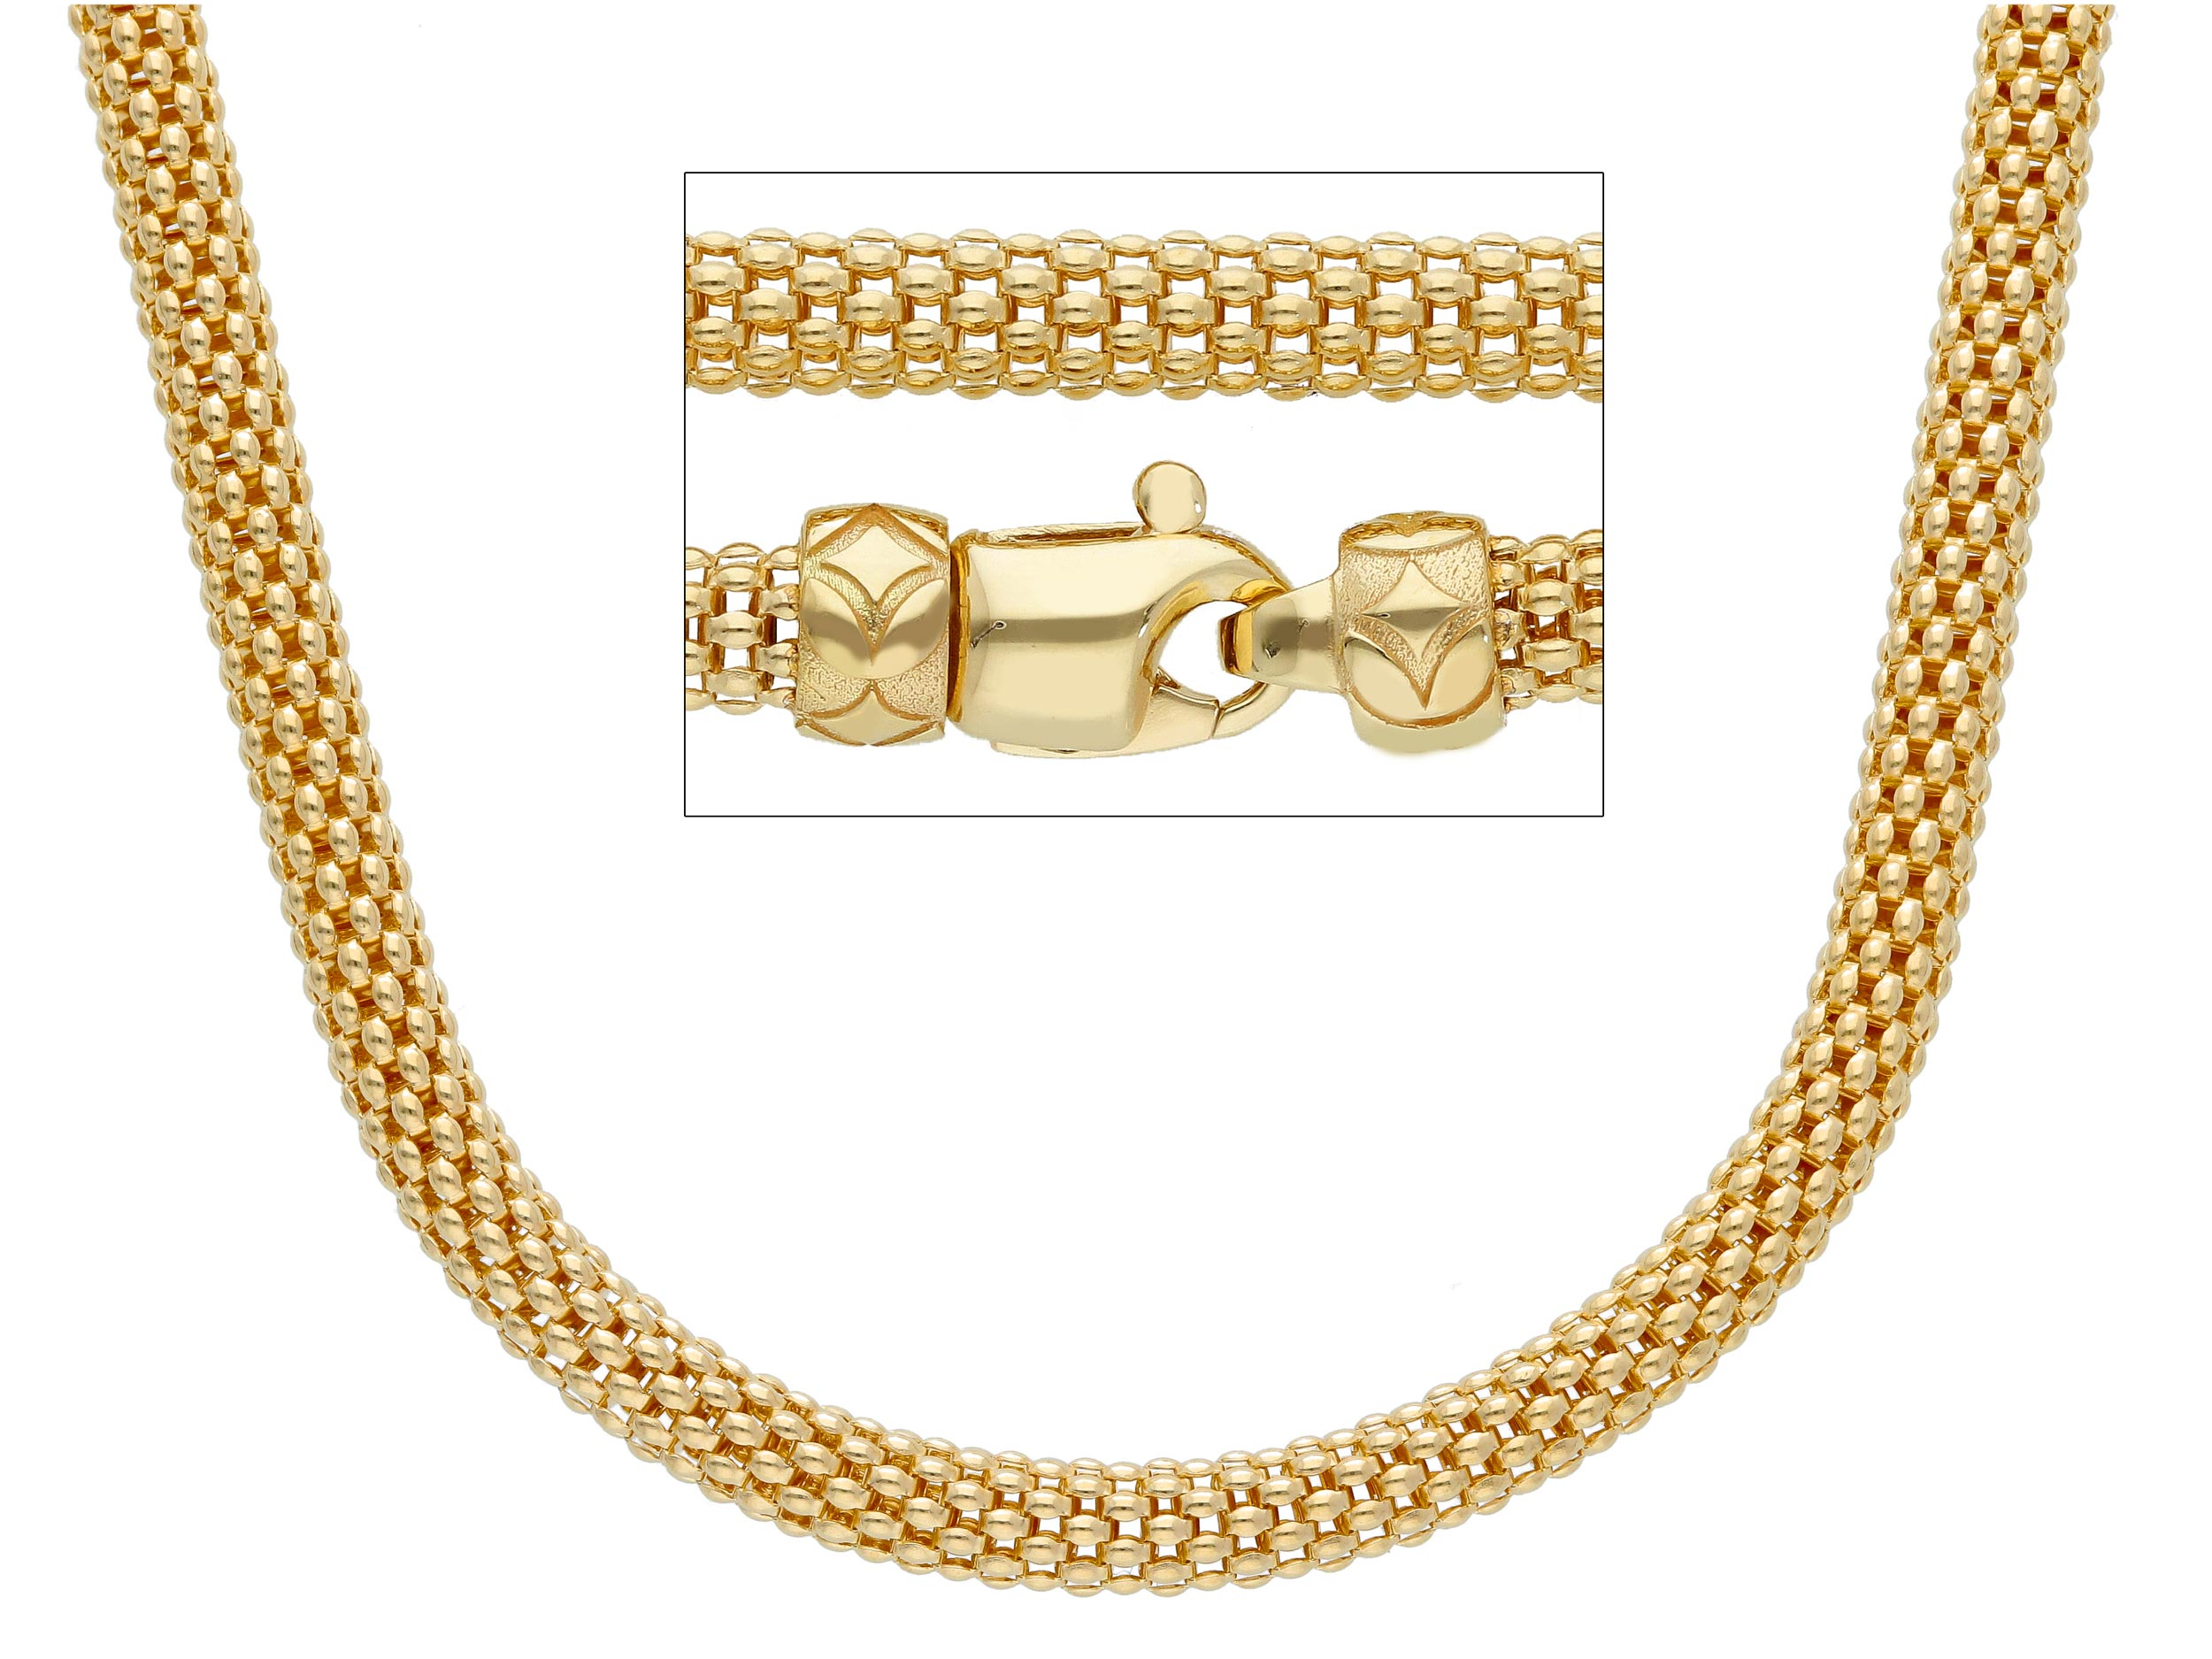 Magnificent 18ct yellow Gold Chain wire Necklace 1.4 and 50cm lenght